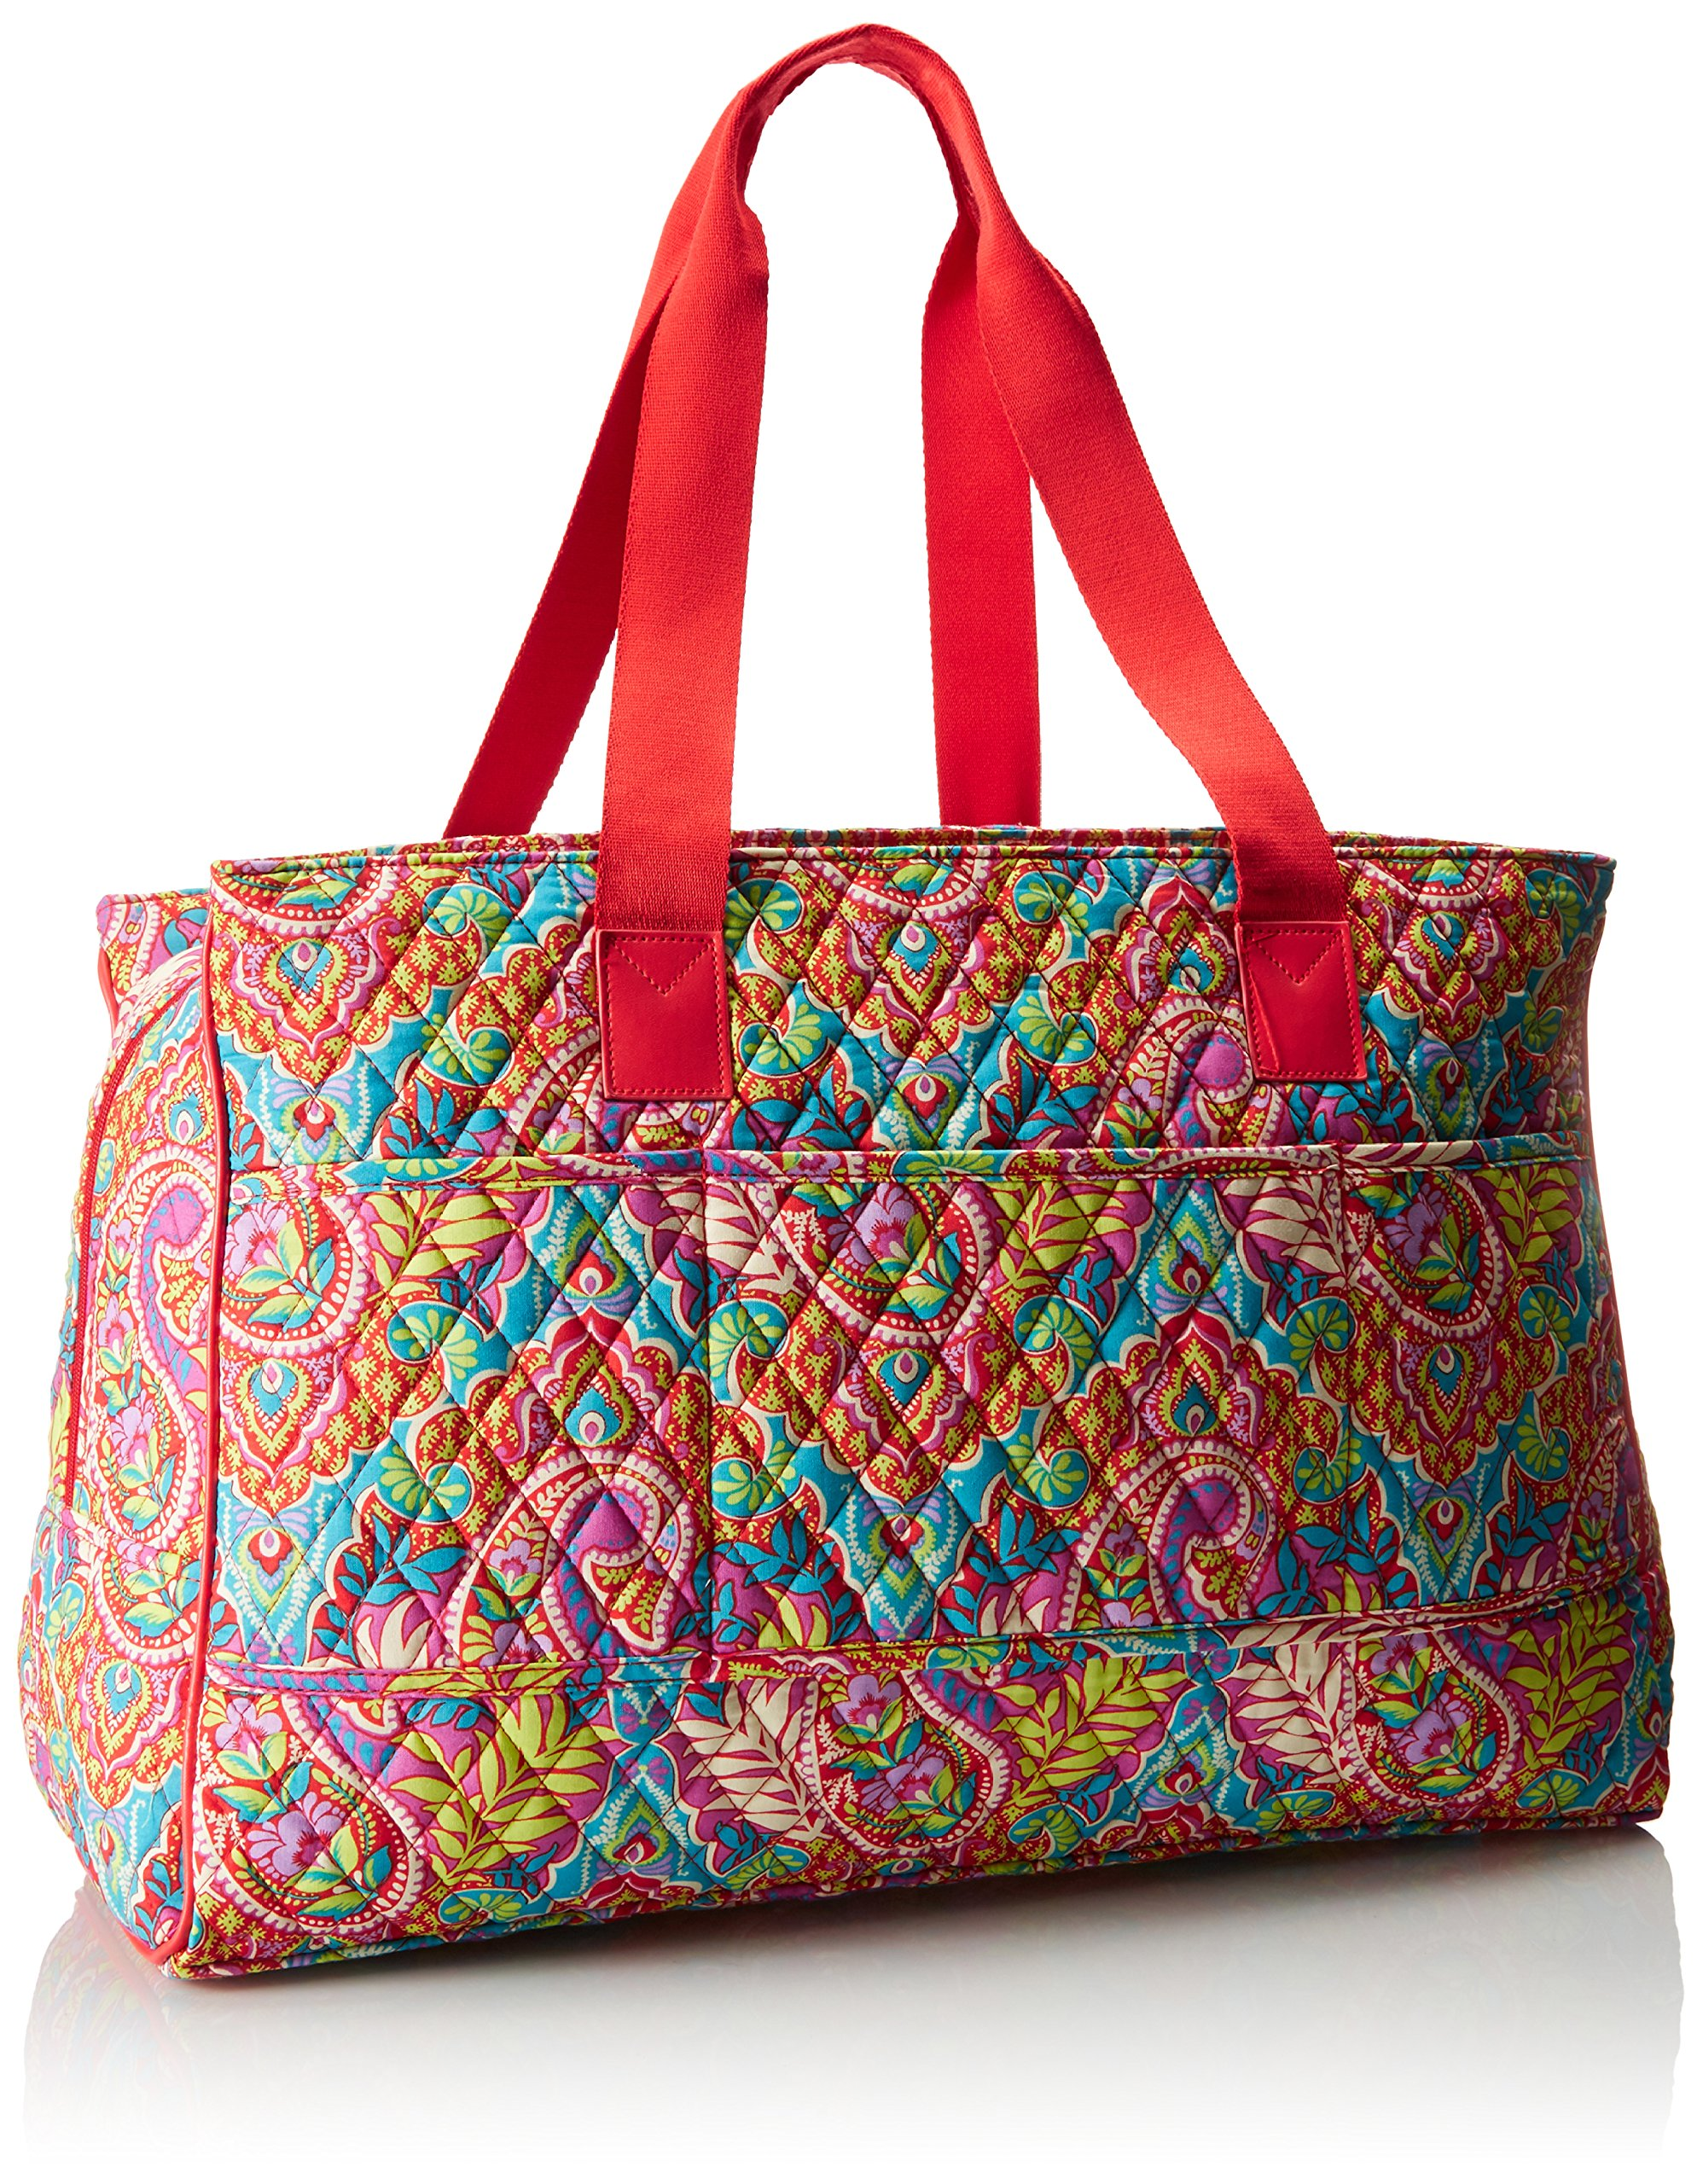 Vera Bradley Women's Triple Compartment Travel Bag, Paisley in Paradise Red by Vera Bradley (Image #2)